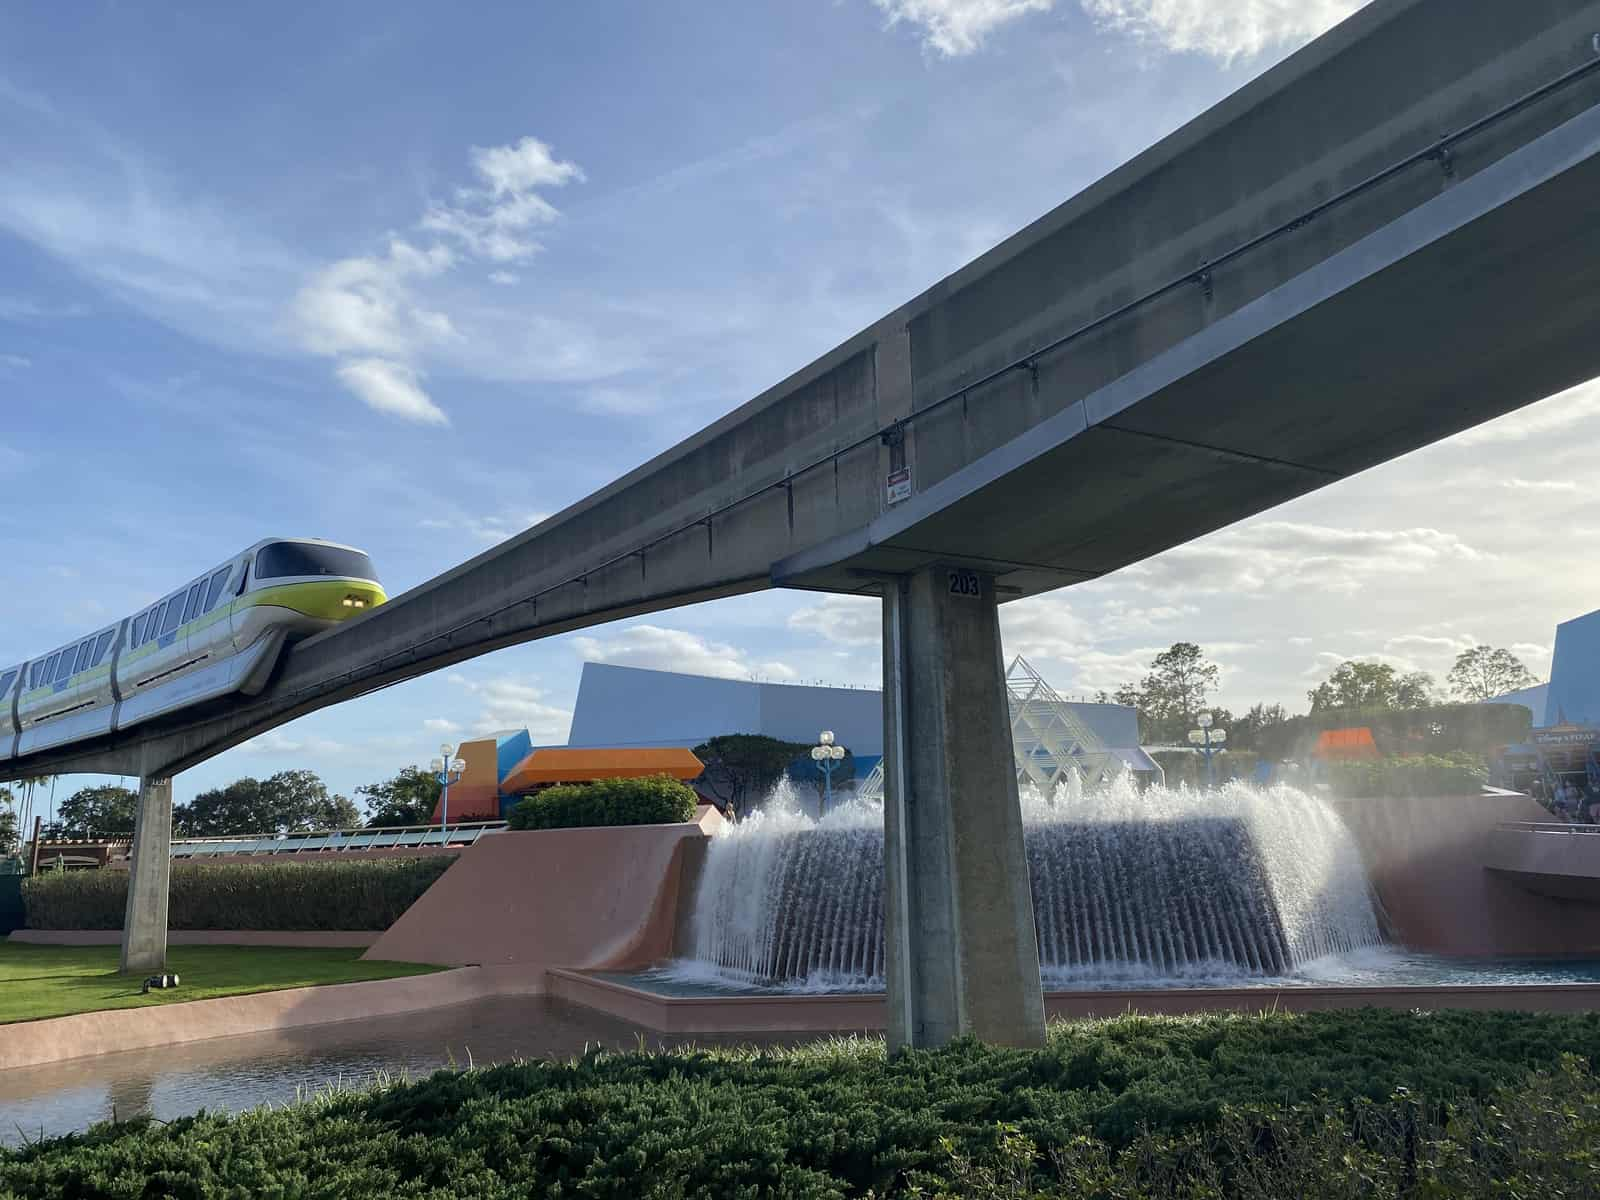 Epcot with the monorail